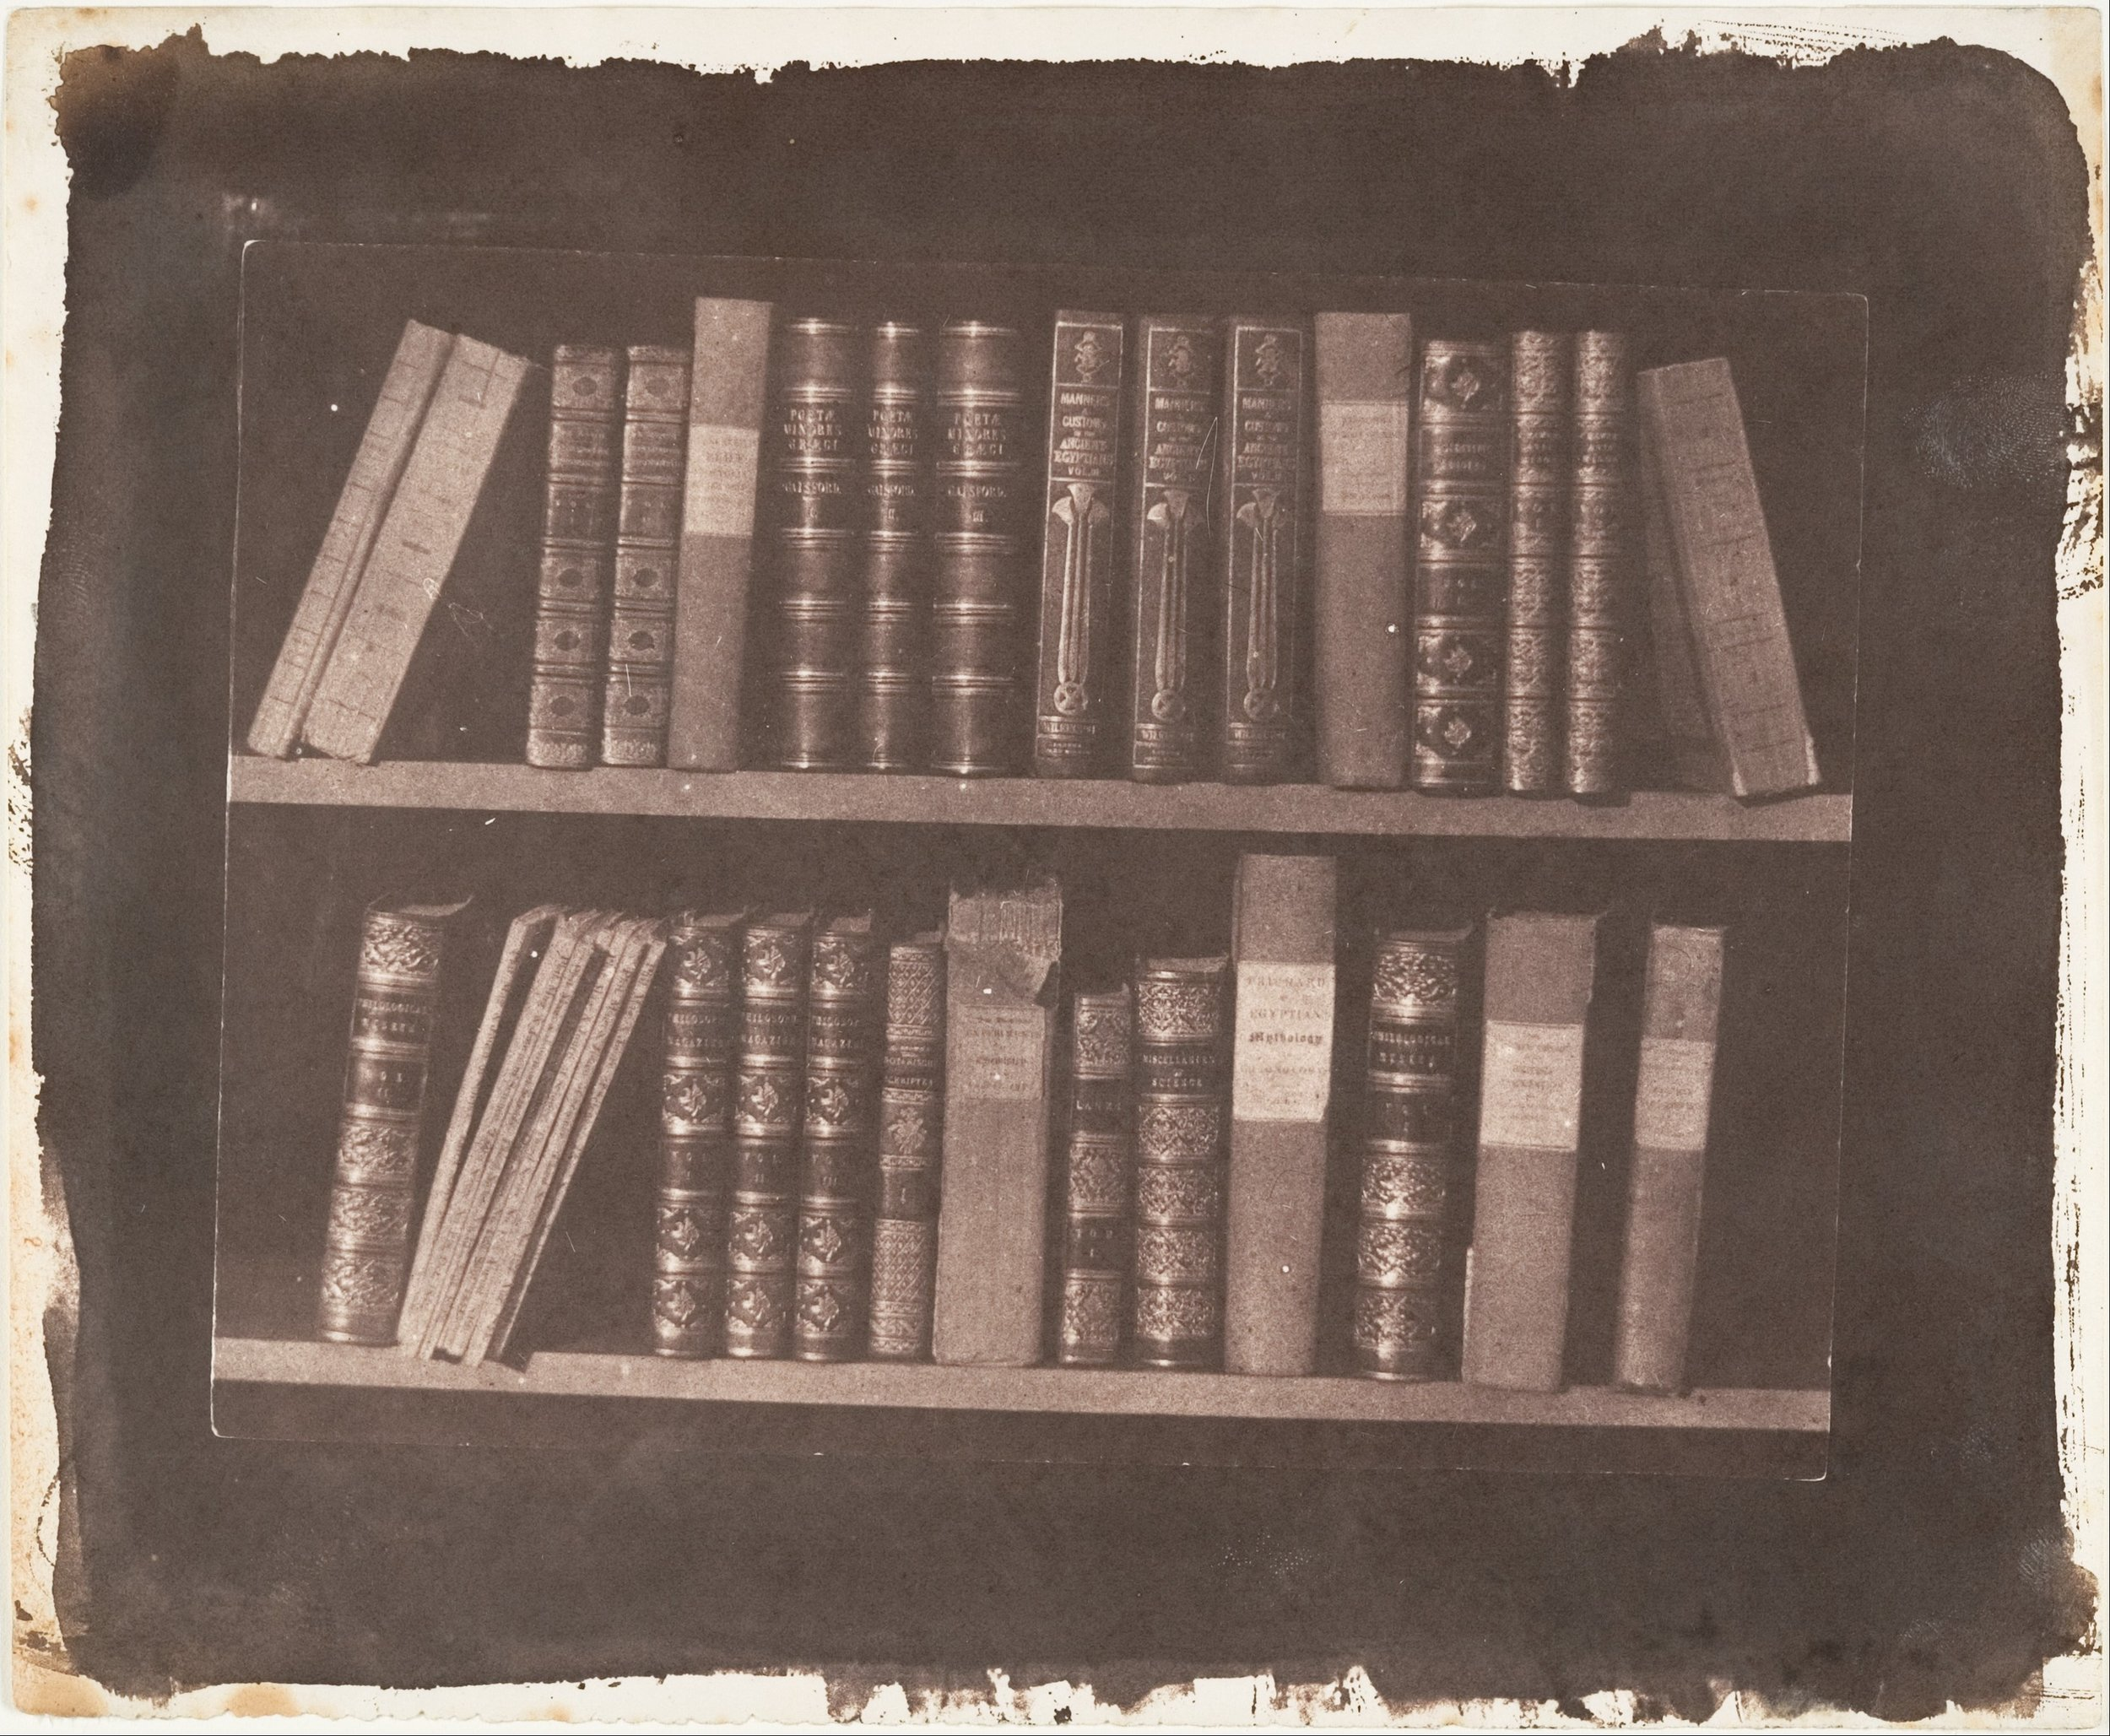 William Henry Fox Talbot (British, Dorset 1800–1877 Lacock).  A Scene in a Library . Before March 22, 1844. Salted paper print from paper negative. Image: 13.3 x 18 cm (5 1/4 x 7 1/16 in.). The Metropolitan Museum of Art. Gilman Collection, Gift of The Howard Gilman Foundation. 2005.100.172.  https://www.metmuseum.org/art/collection/search/283066